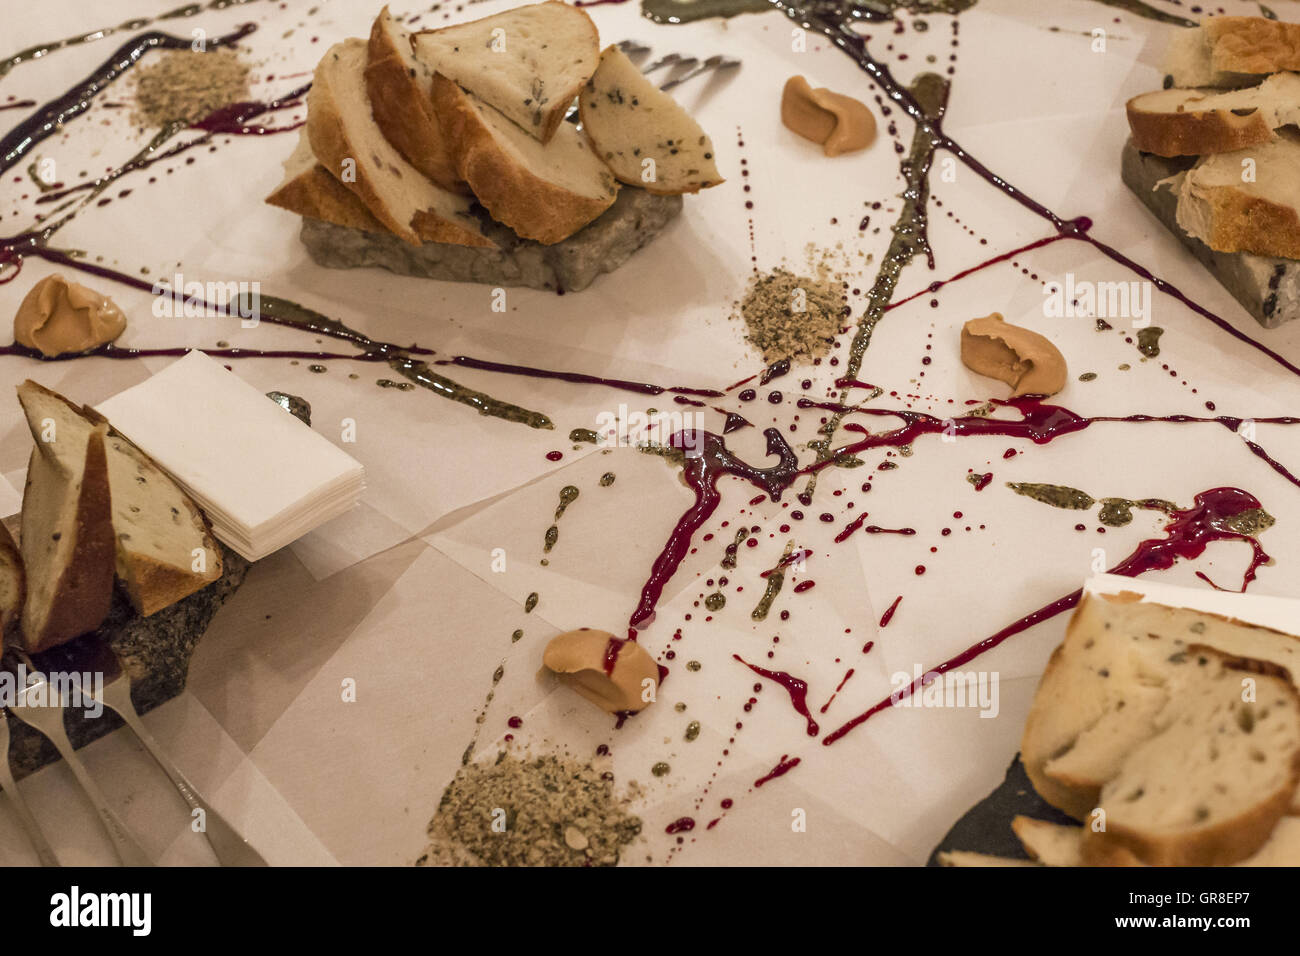 Original Appetizer On Latvian Manner - Stock Image